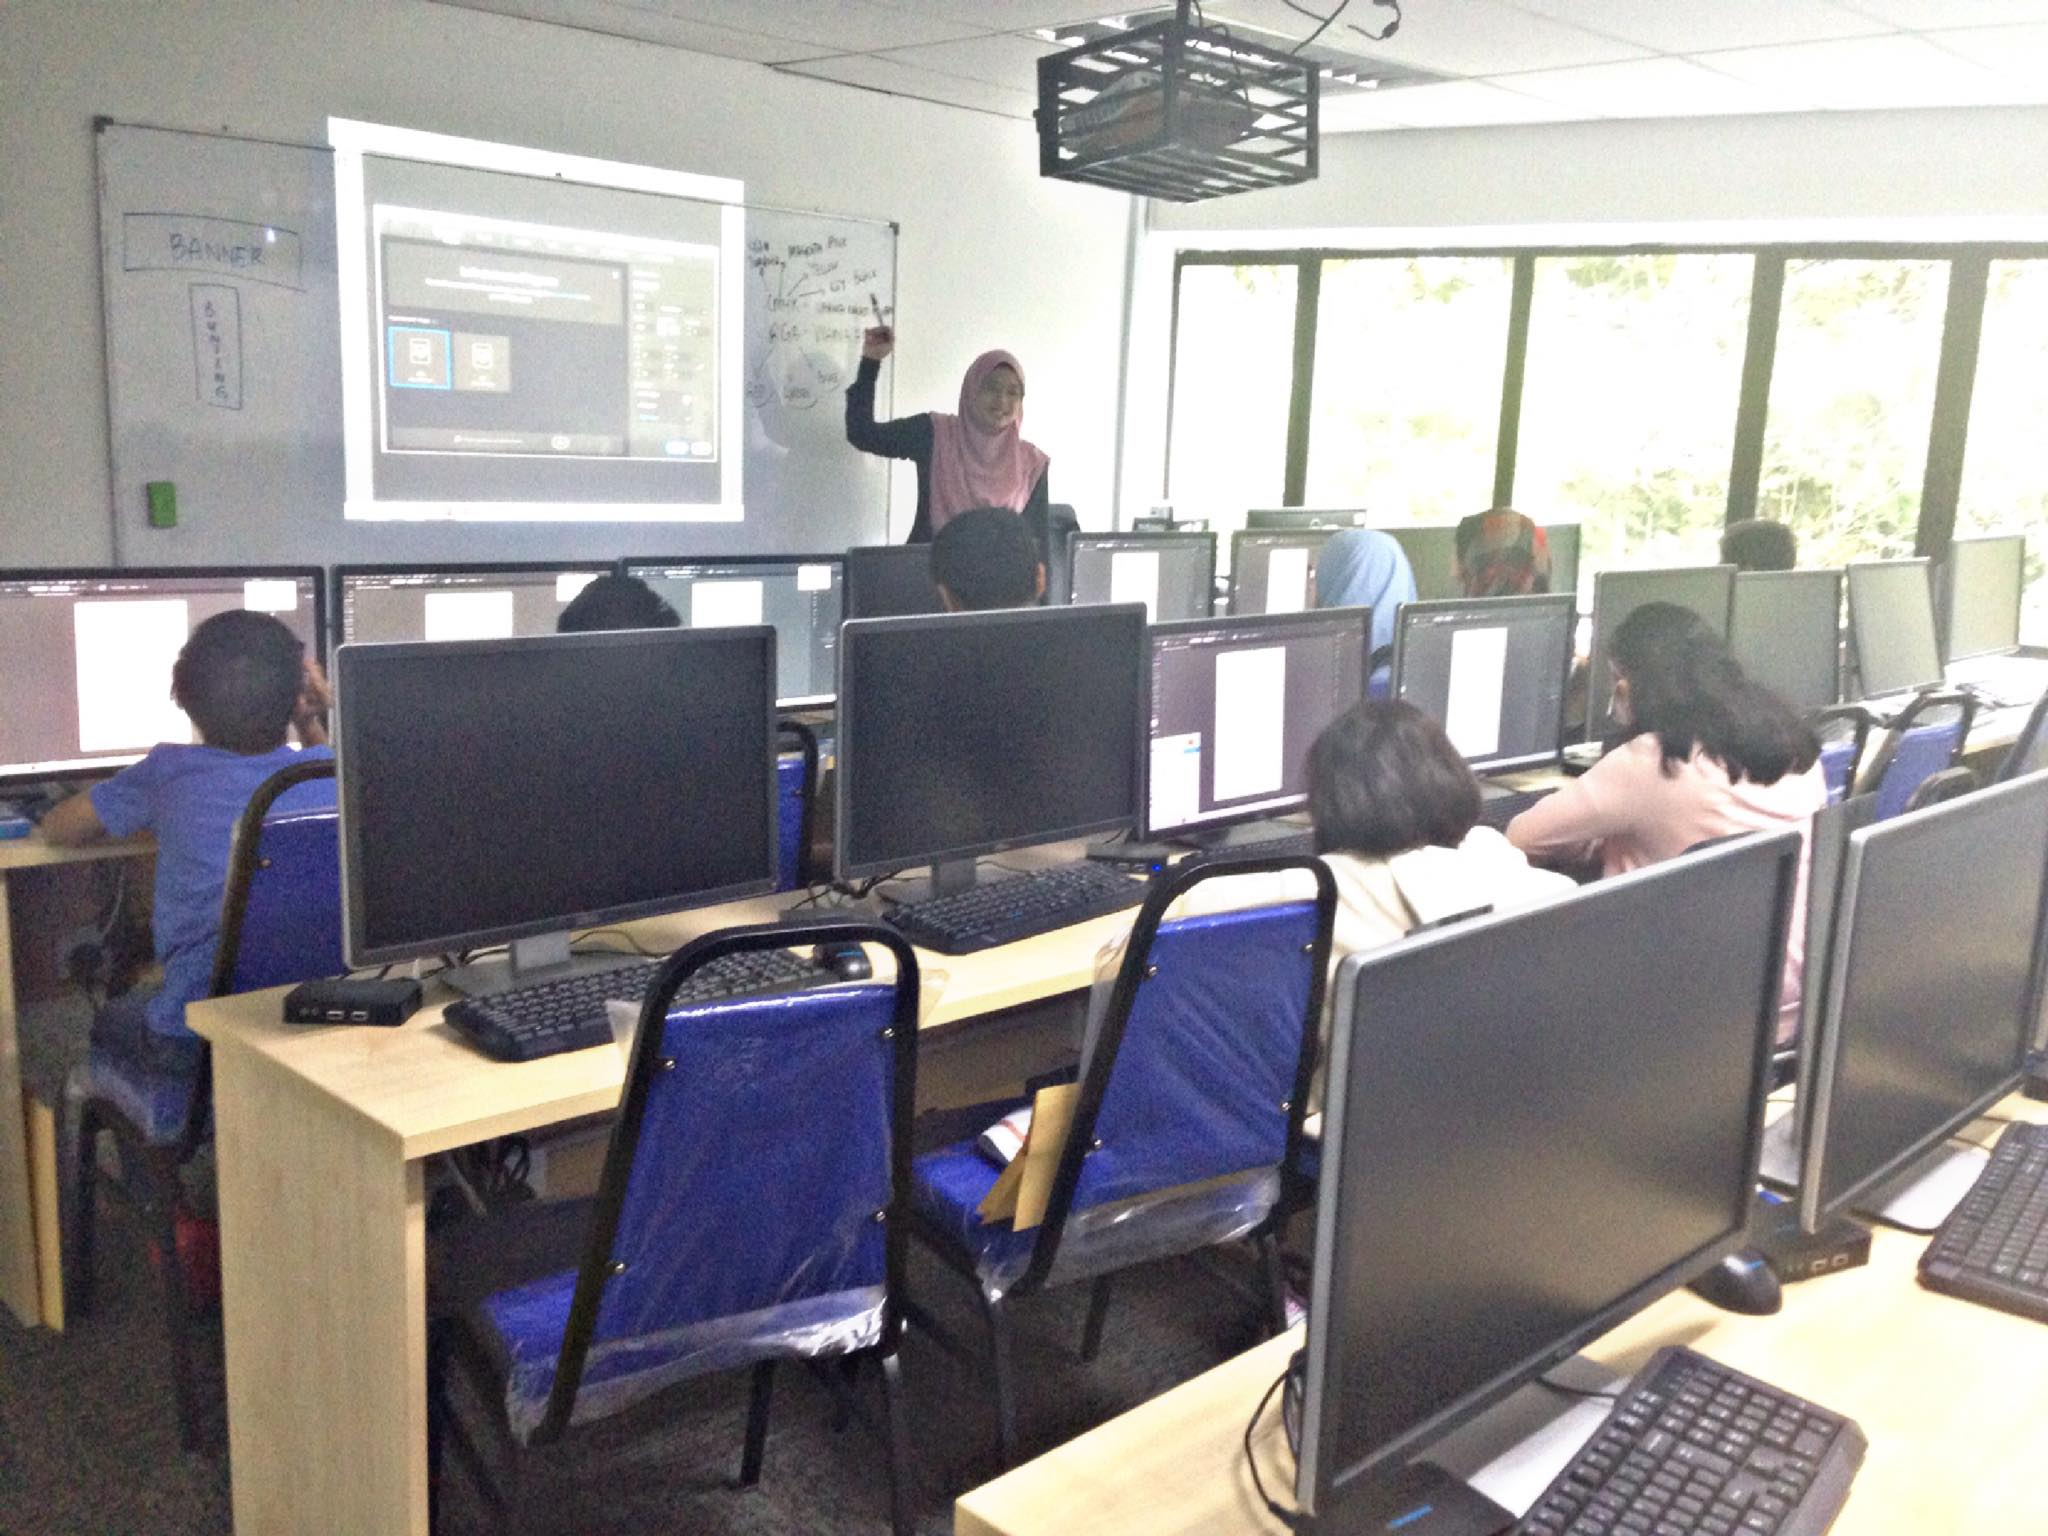 Les-Copaque-Animation-Academy-In-Malaysia-4